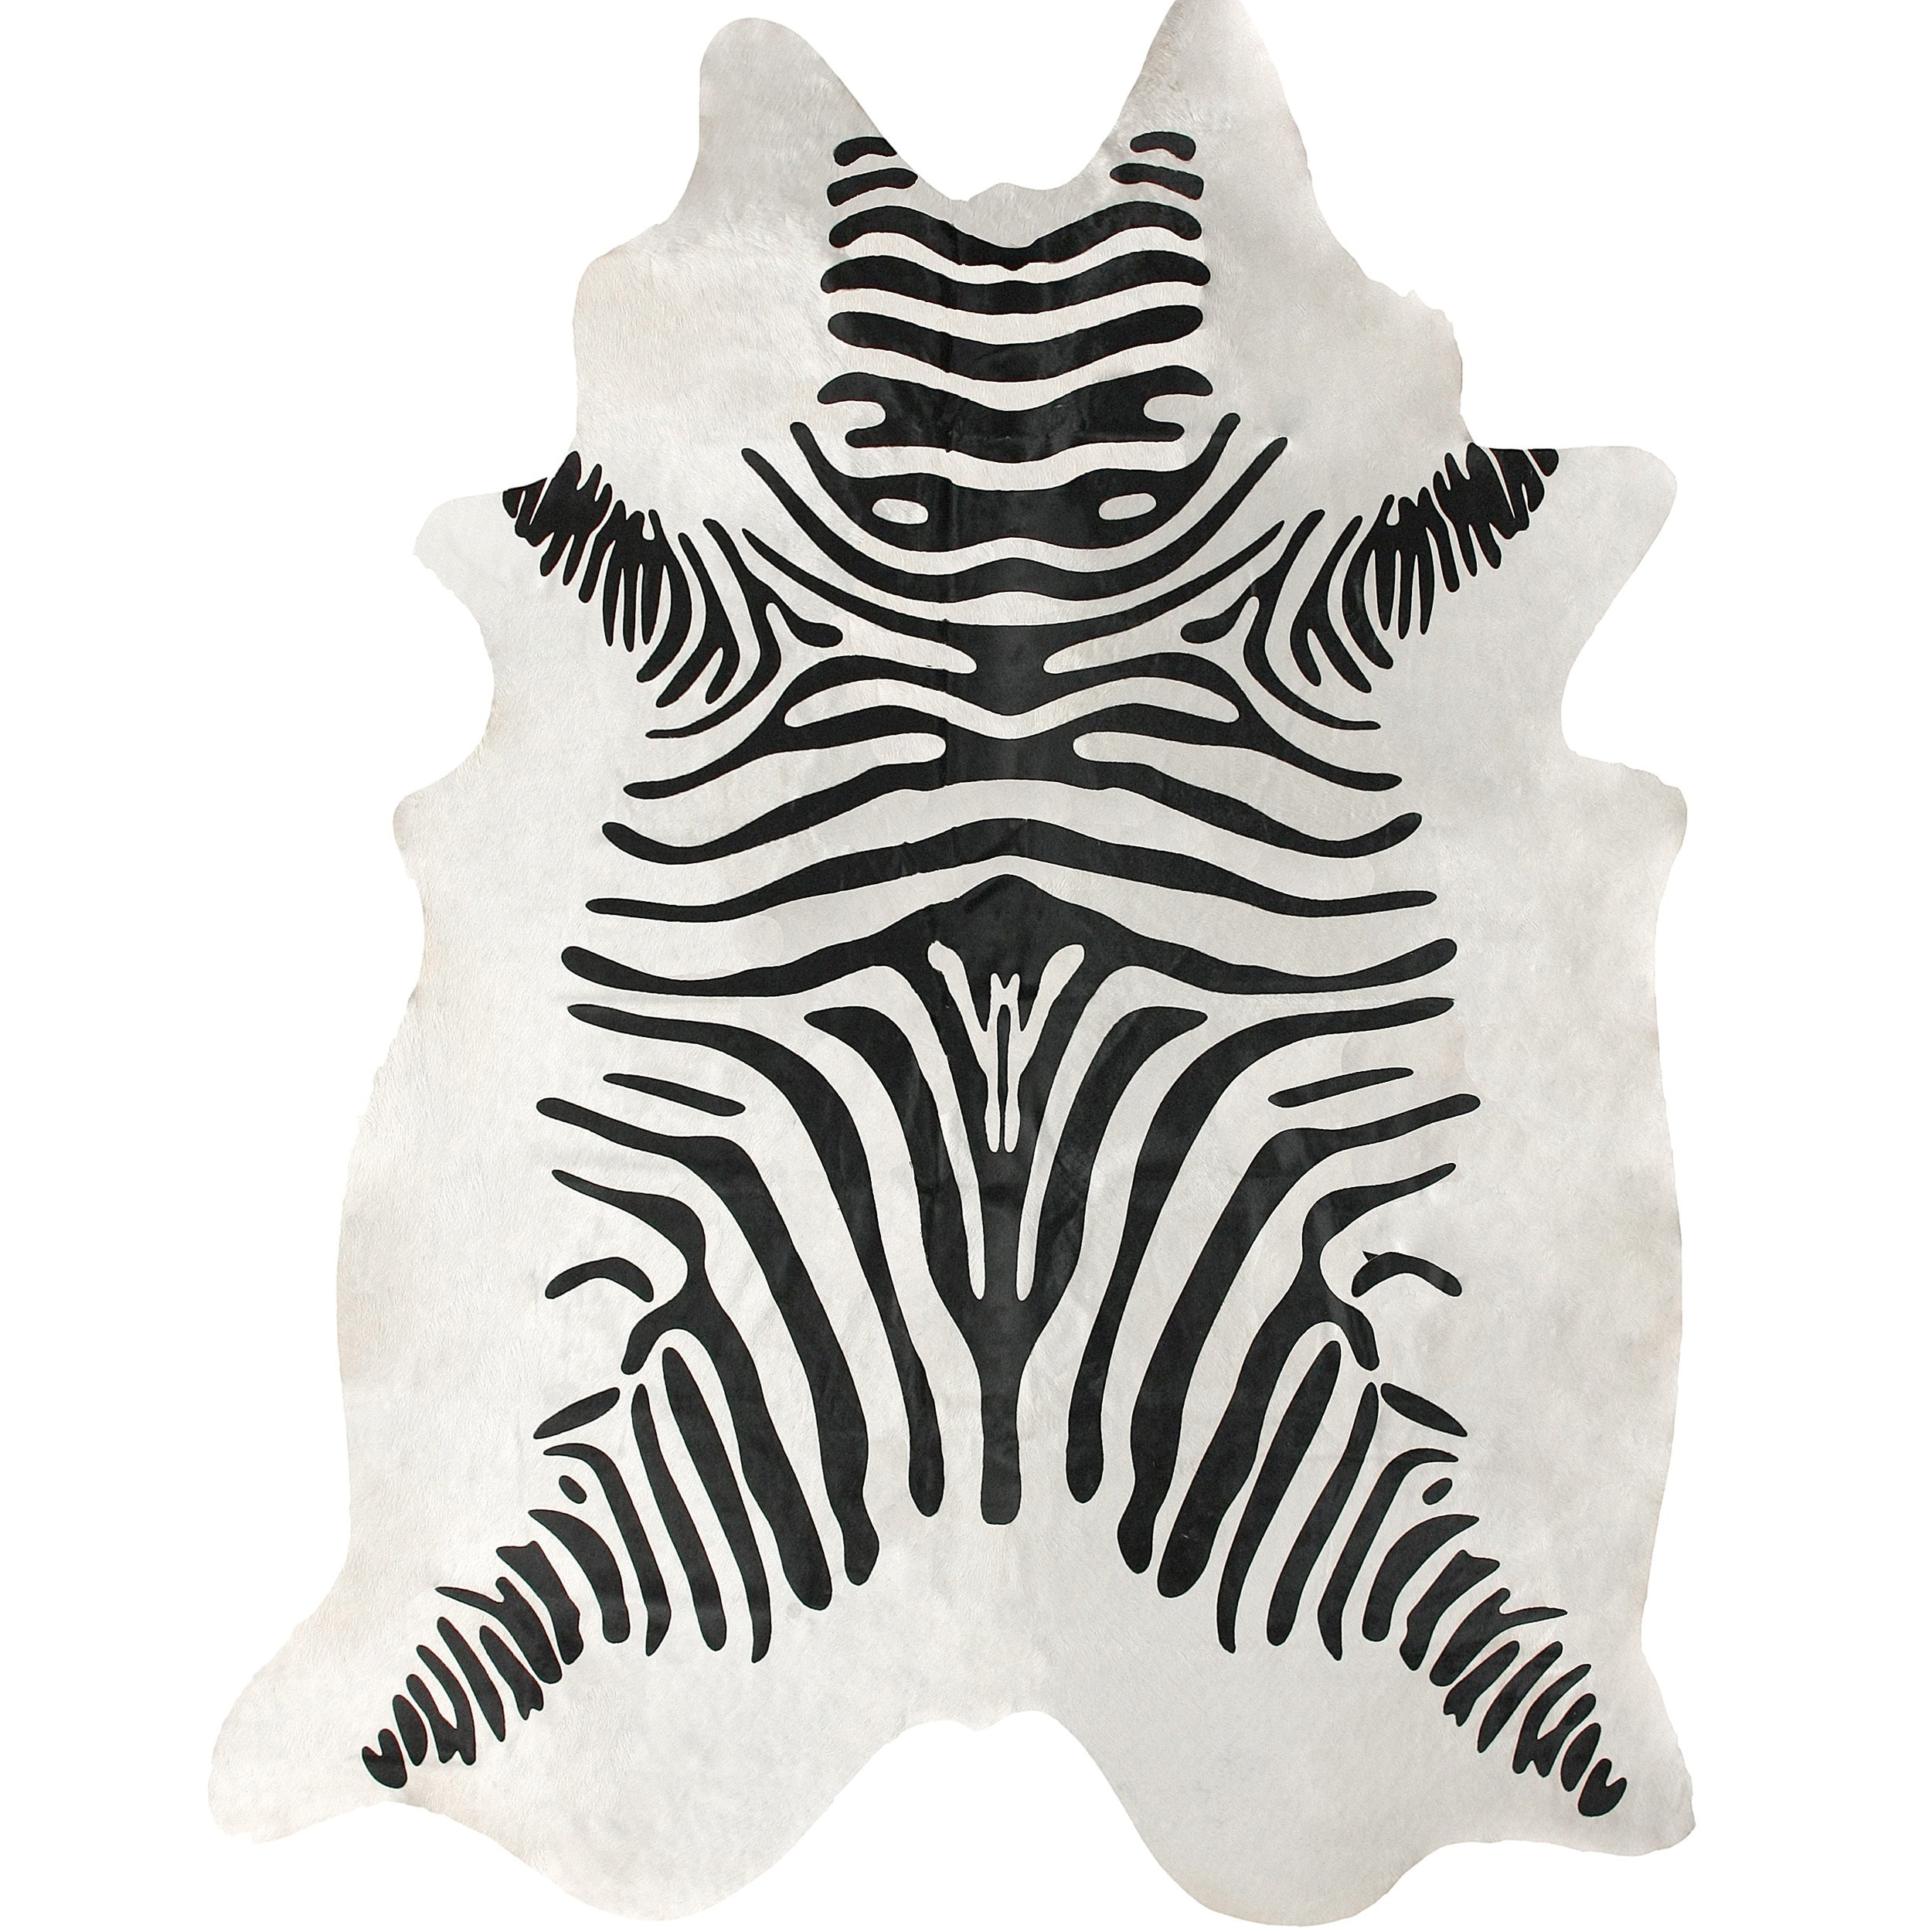 Nuloom Hand Picked Brazilian Black White Zebra Cowhide Rug 5 X 7 Free Shipping Today 13283870